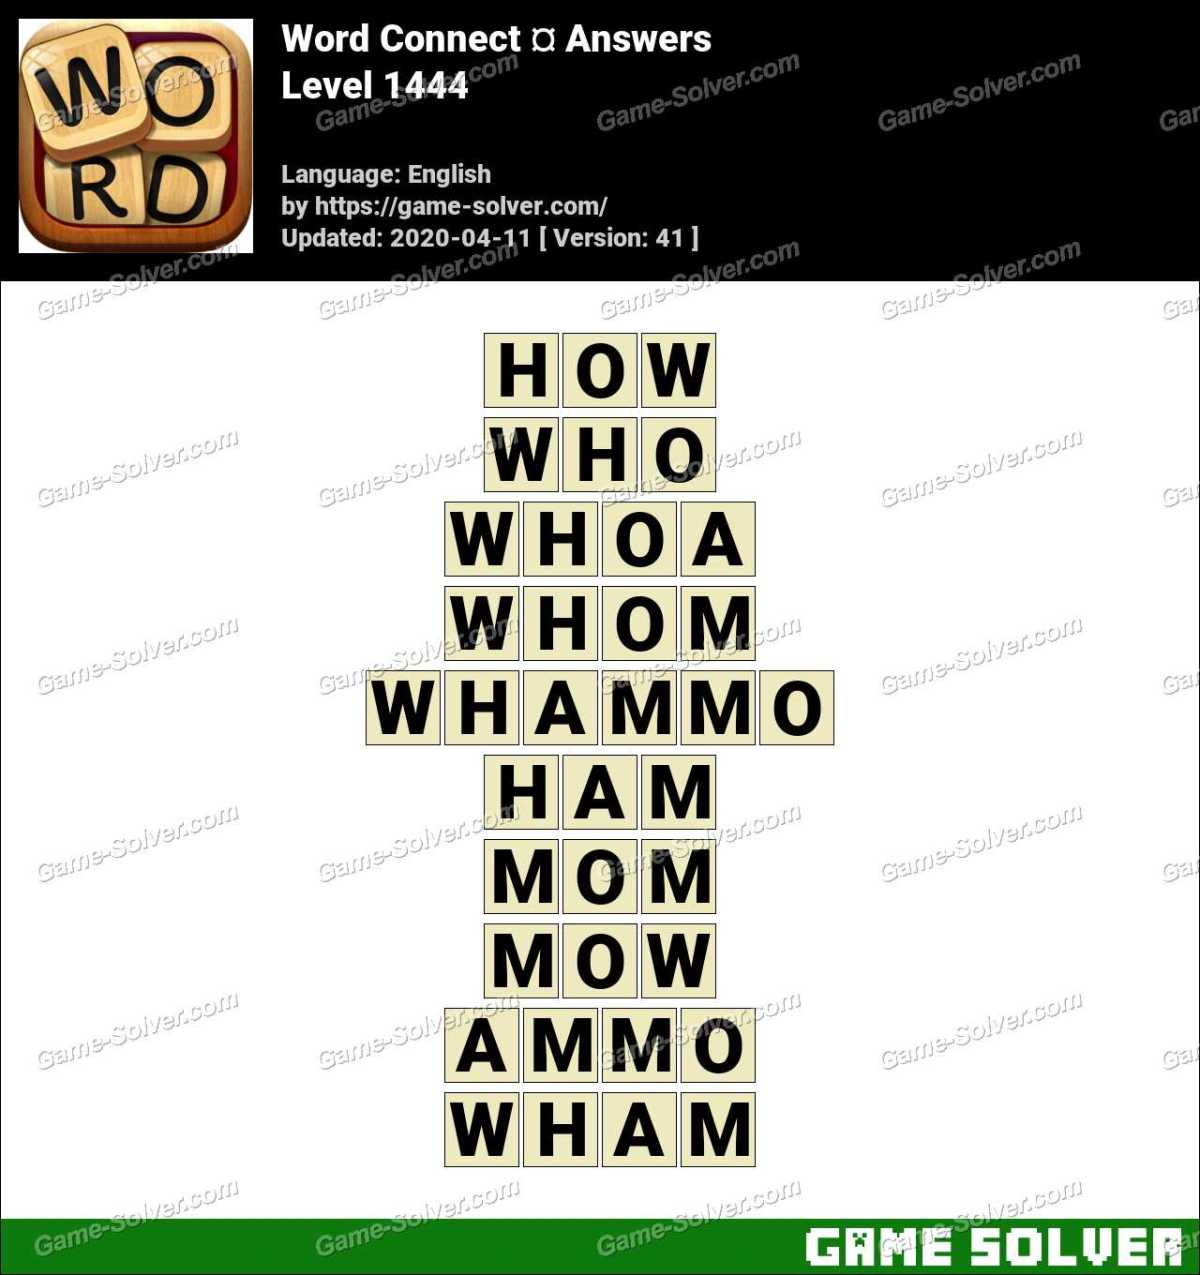 Word Connect Level 1444 Answers